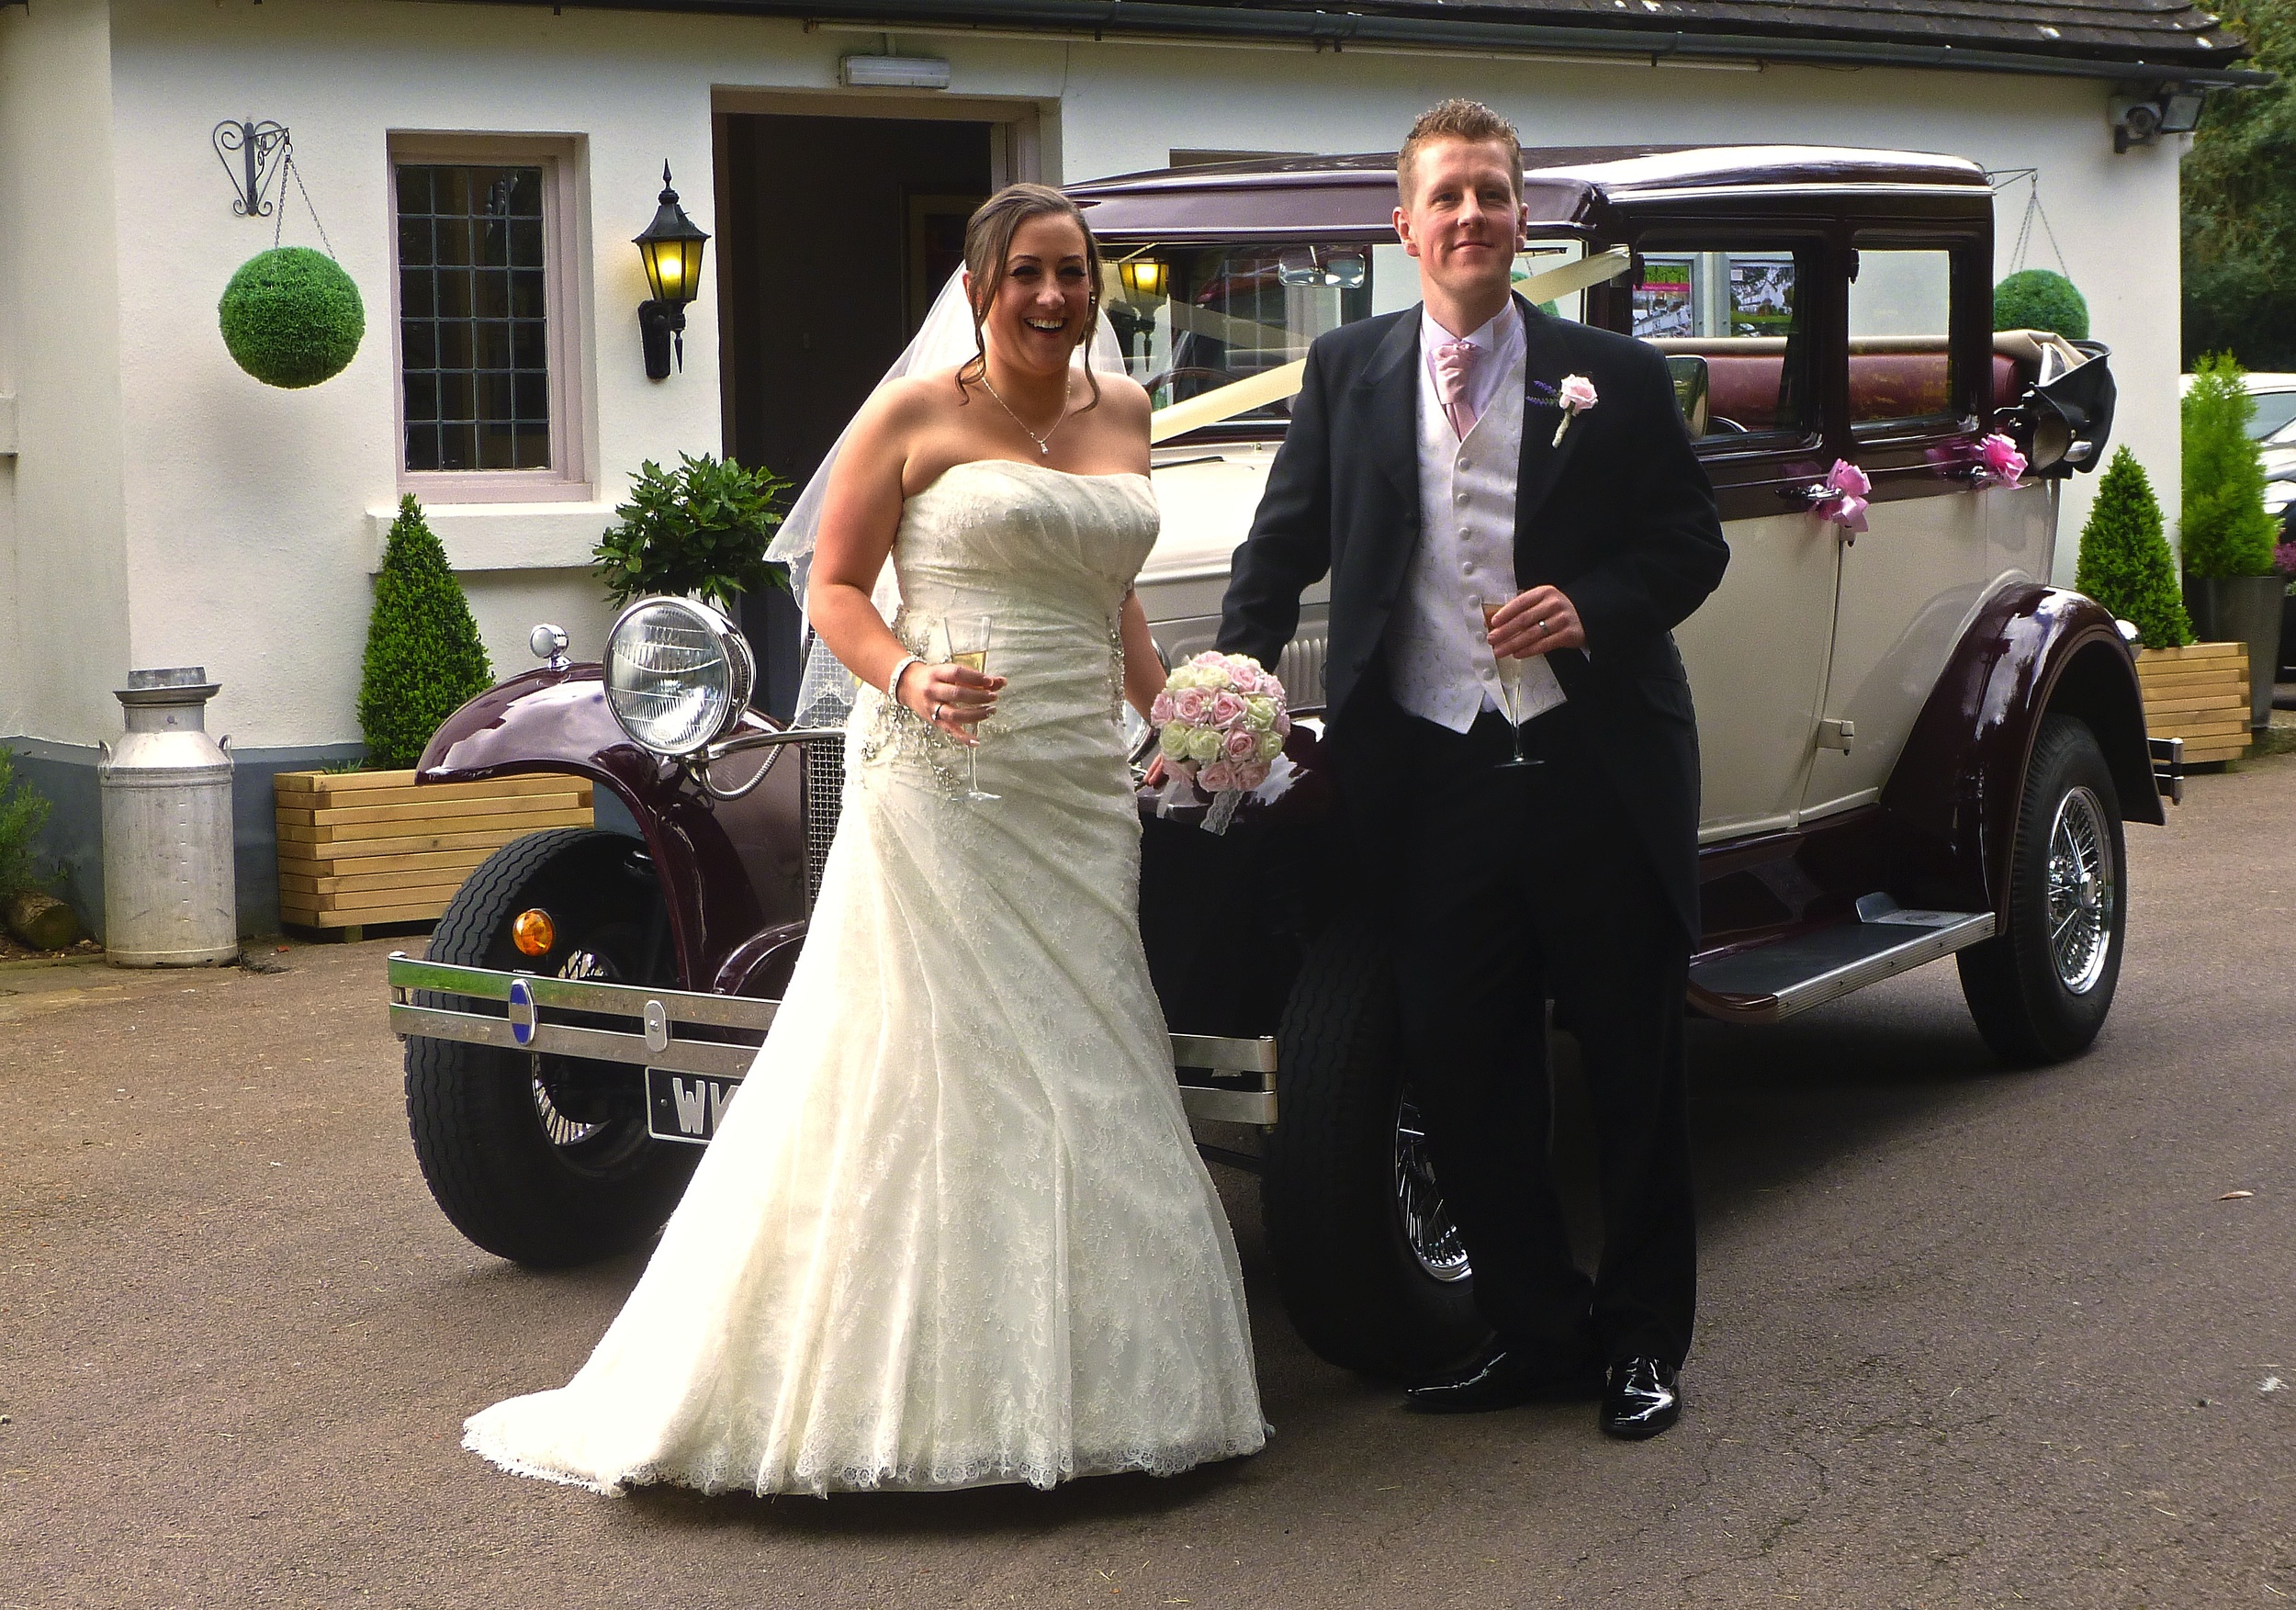 Carlene And Matthew enjoying a toast on arrival at Ashton Lodge Country House. The venue is close to the villages of Monks Kirby, Pailton, Withybrook, Street Ashton and Stetton under Fosse. A beautiful country setting for a wedding.